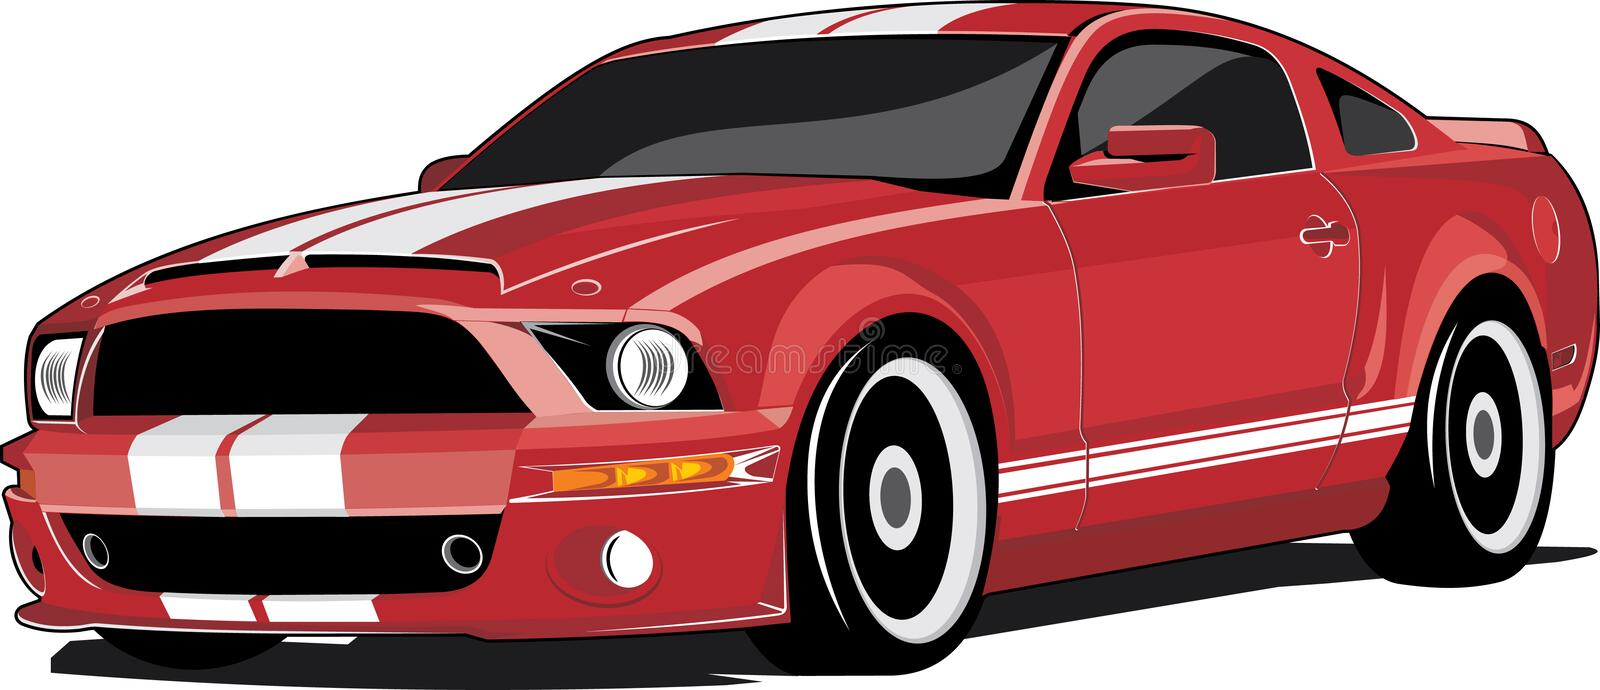 Red Sports Car Stock Vector. Illustration Of Drawing - 16517639